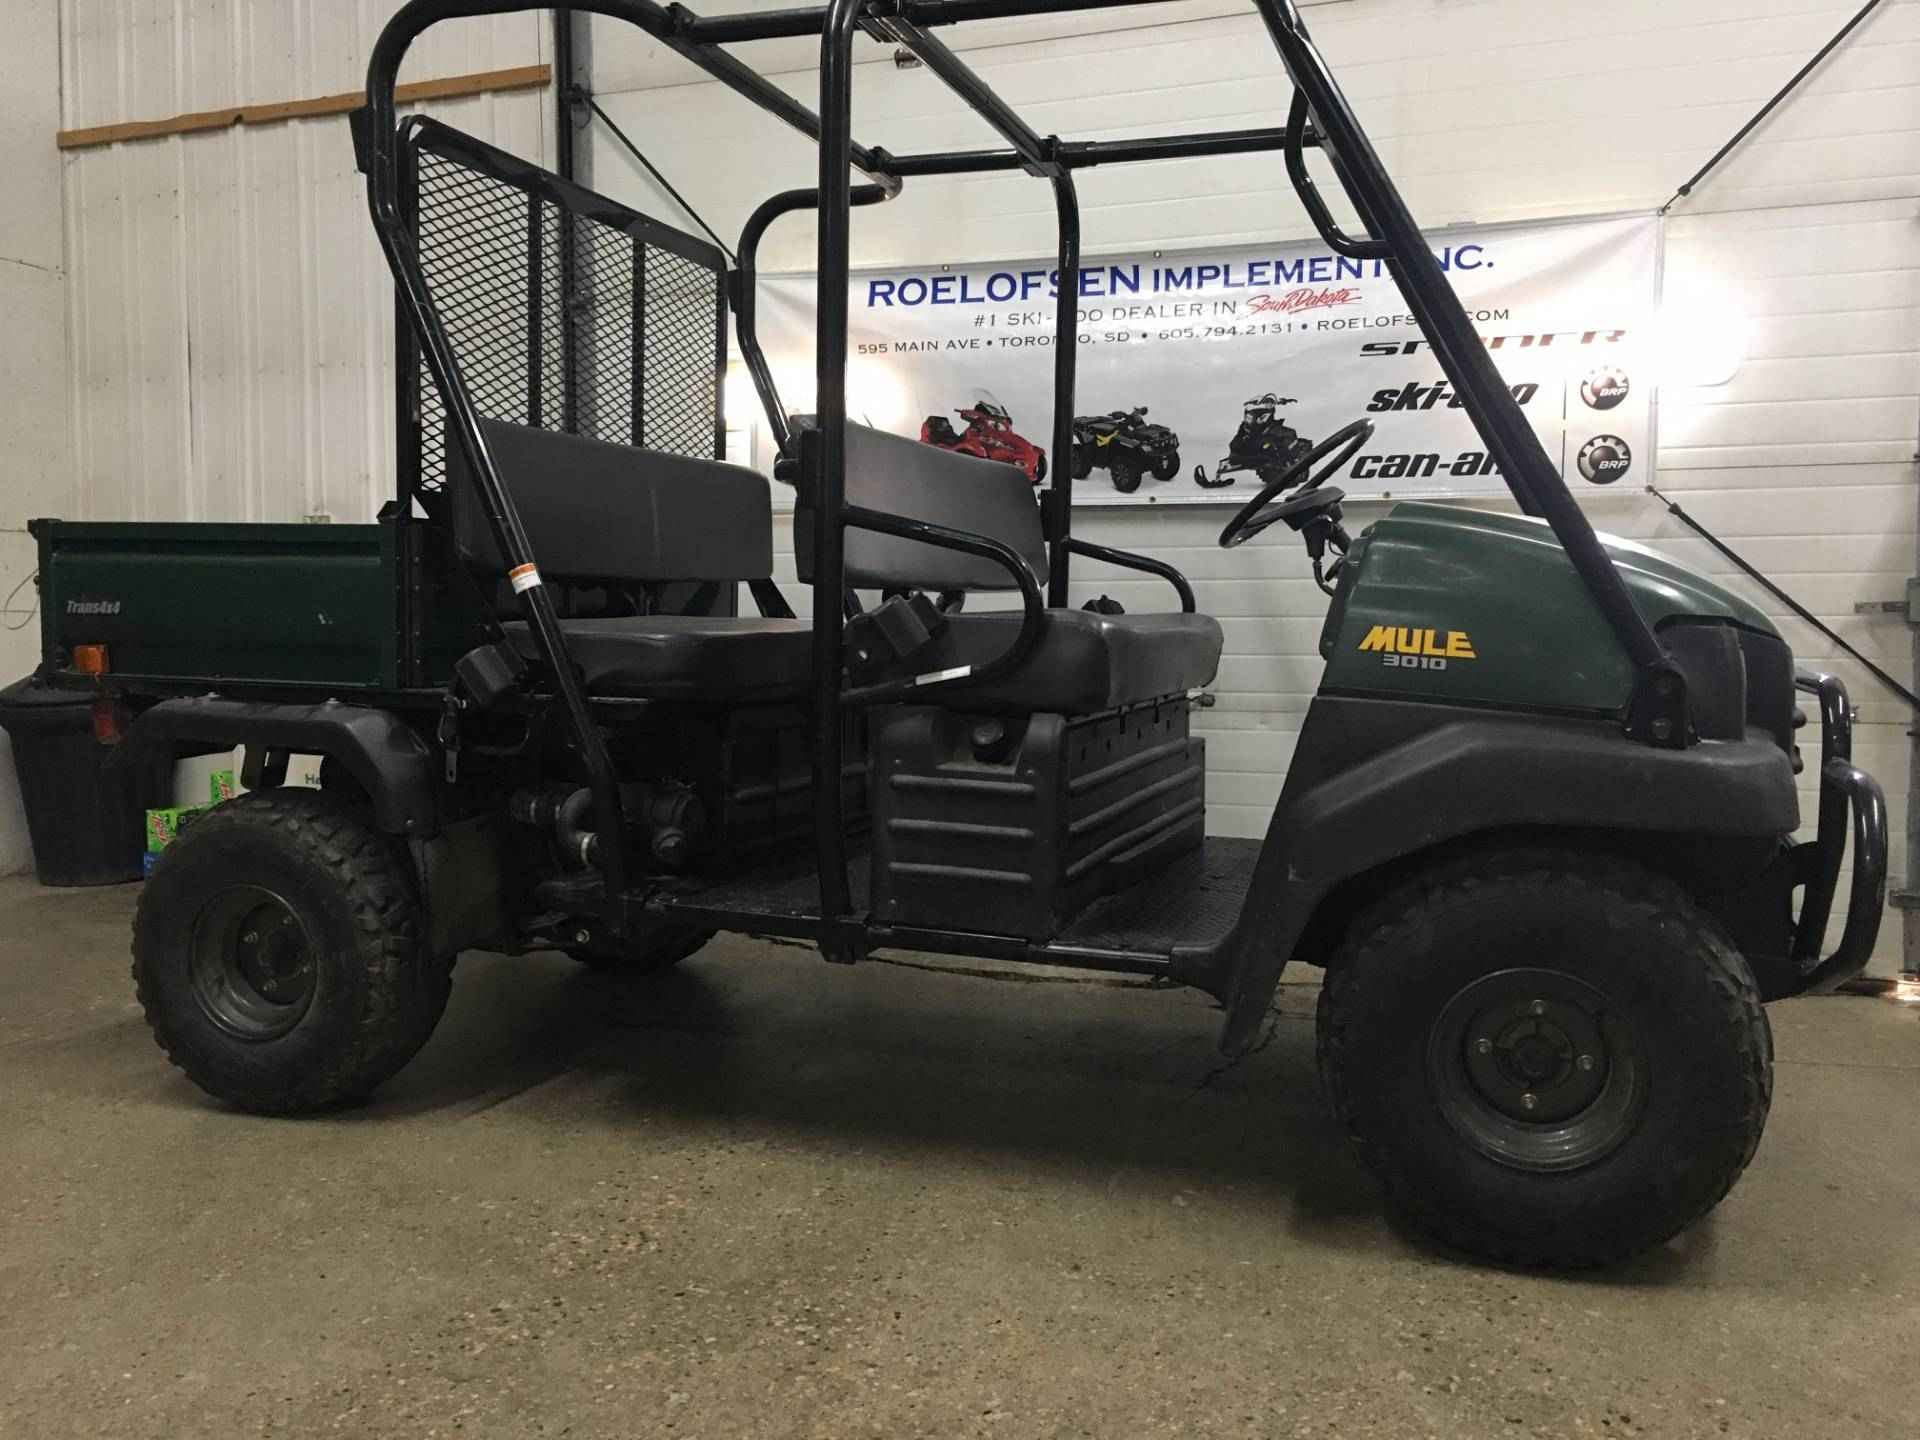 South Dakota Atvs For Sale On Bennche Fuse Box Used 2006 Kawasaki Mule 3010 4x4 In